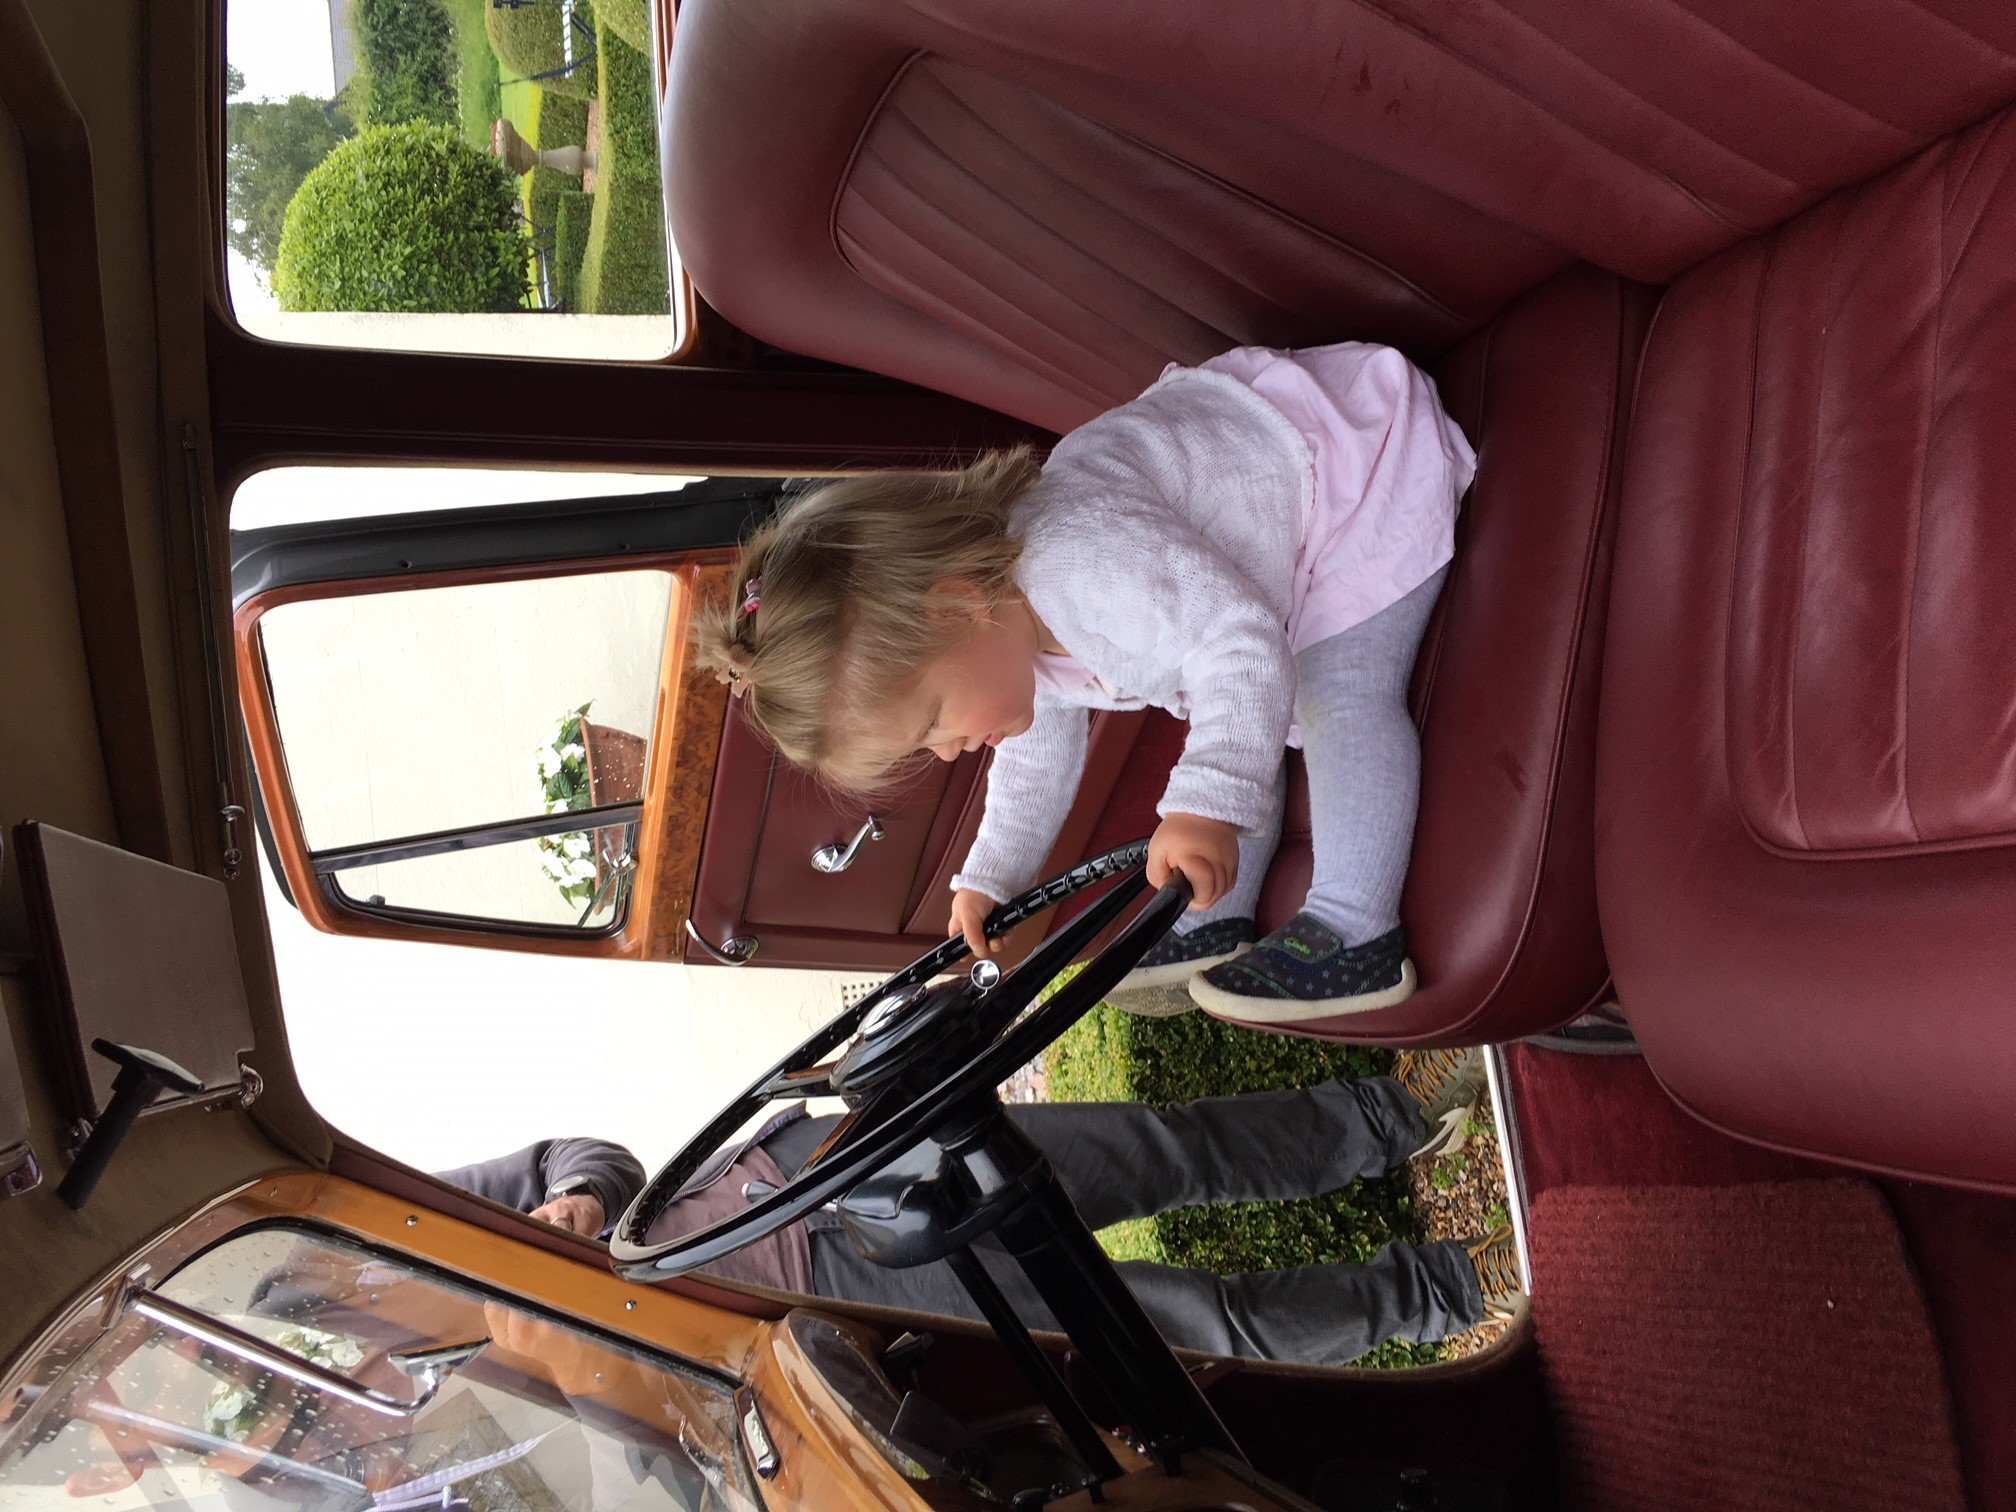 My two year old niece learning motor